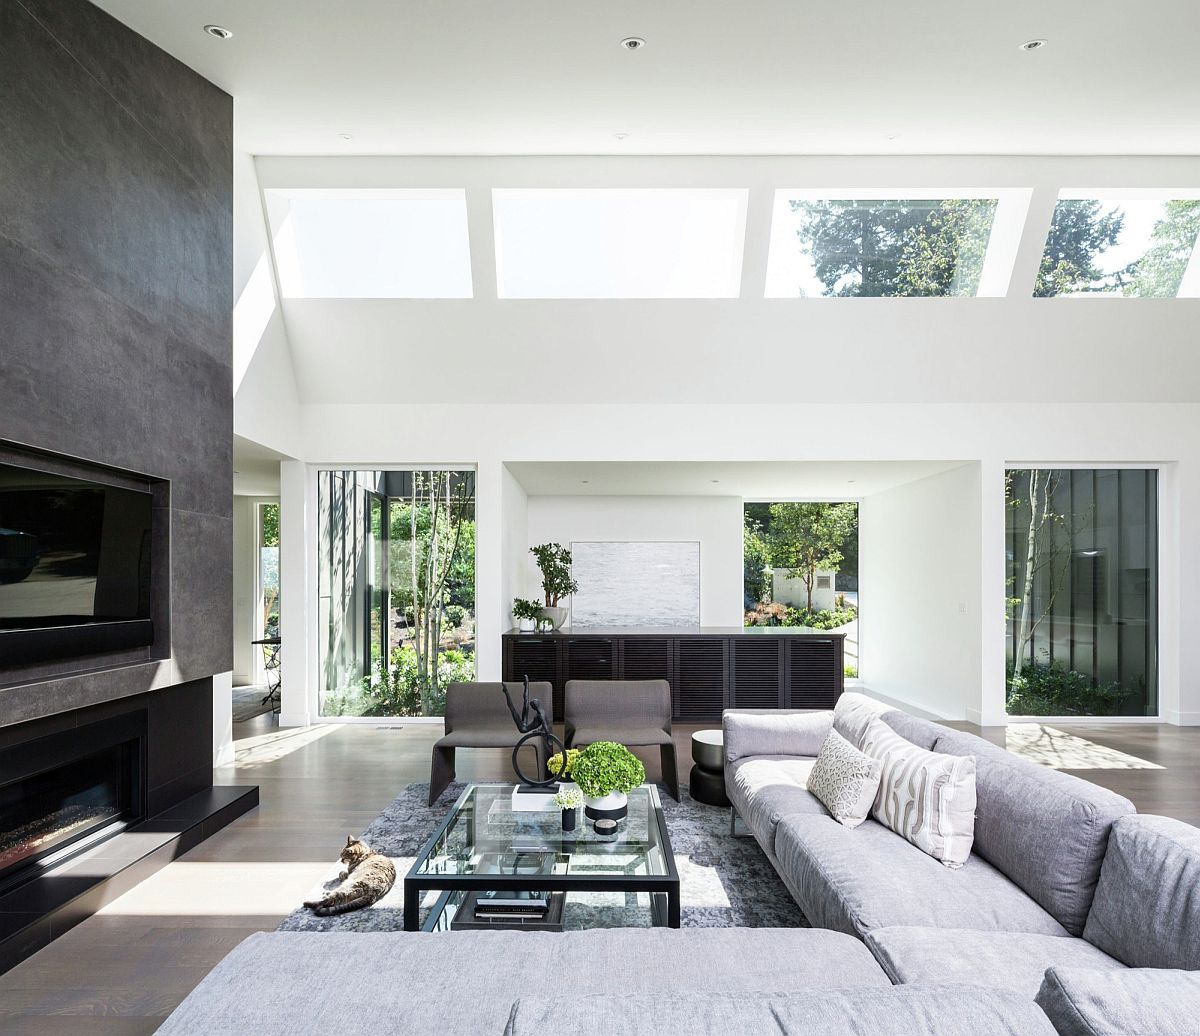 Vancouver Home By Randy Bens Architect Extends Its Living Space. at home living space